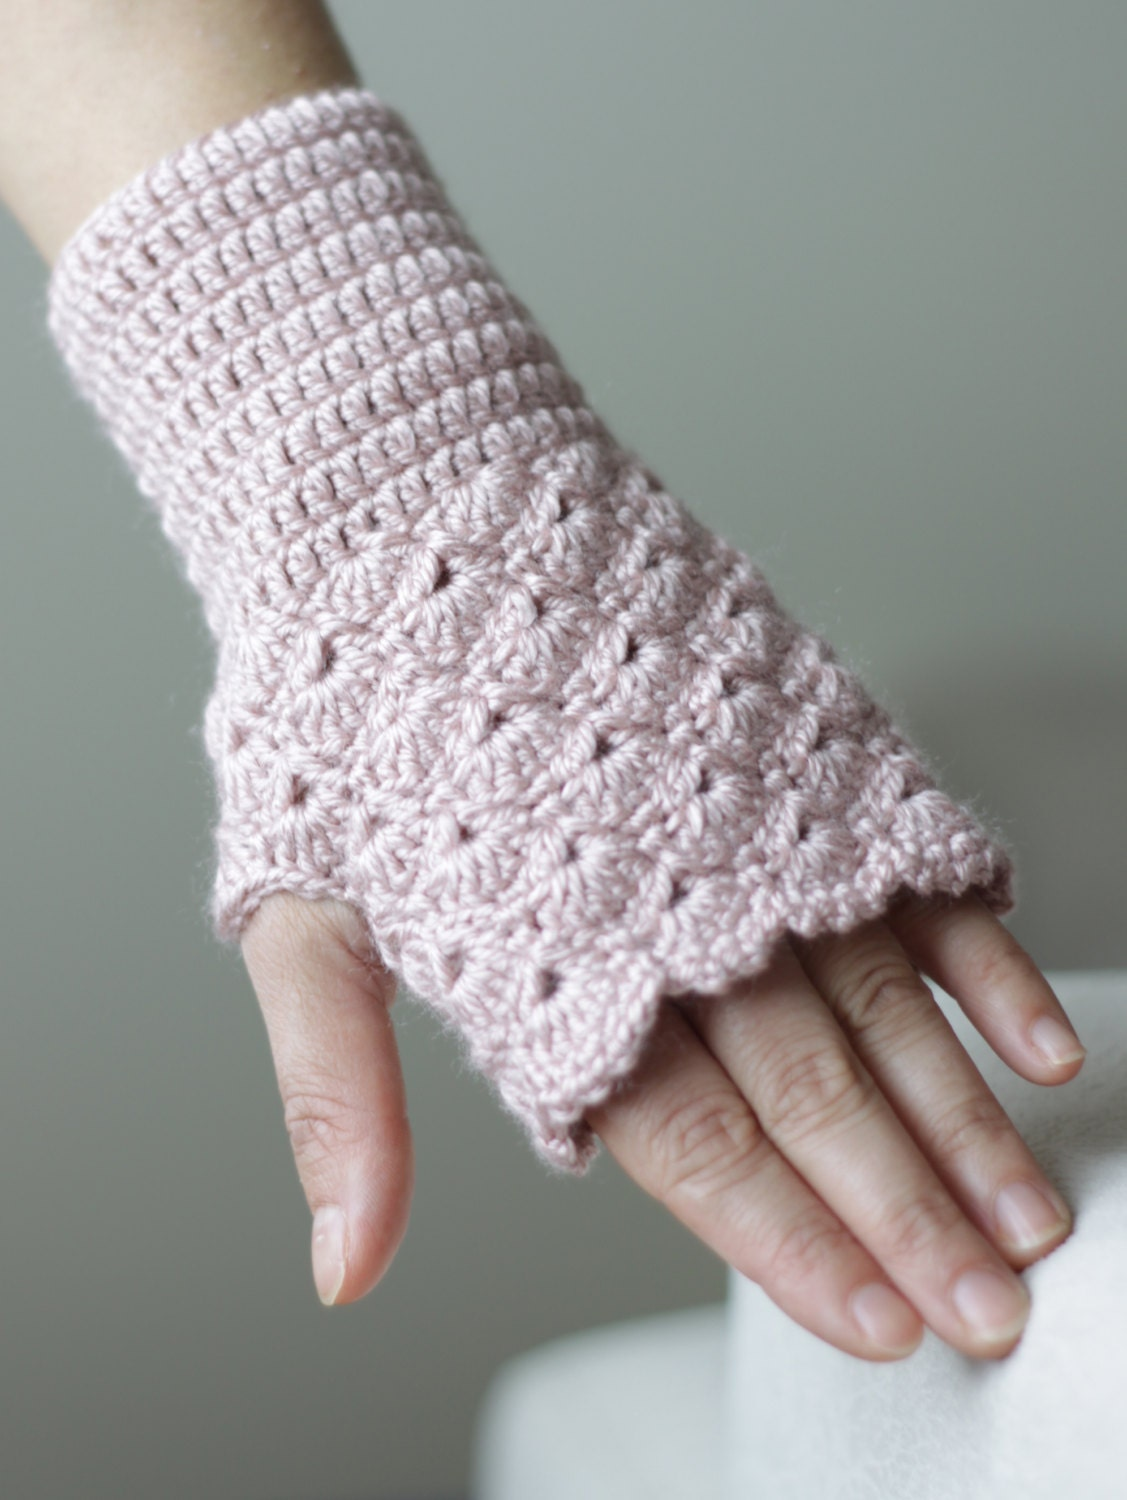 Crocheting Fingerless Gloves : SPRING SALE Crochet fingerless gloves in dusty rose by SENNURSASA